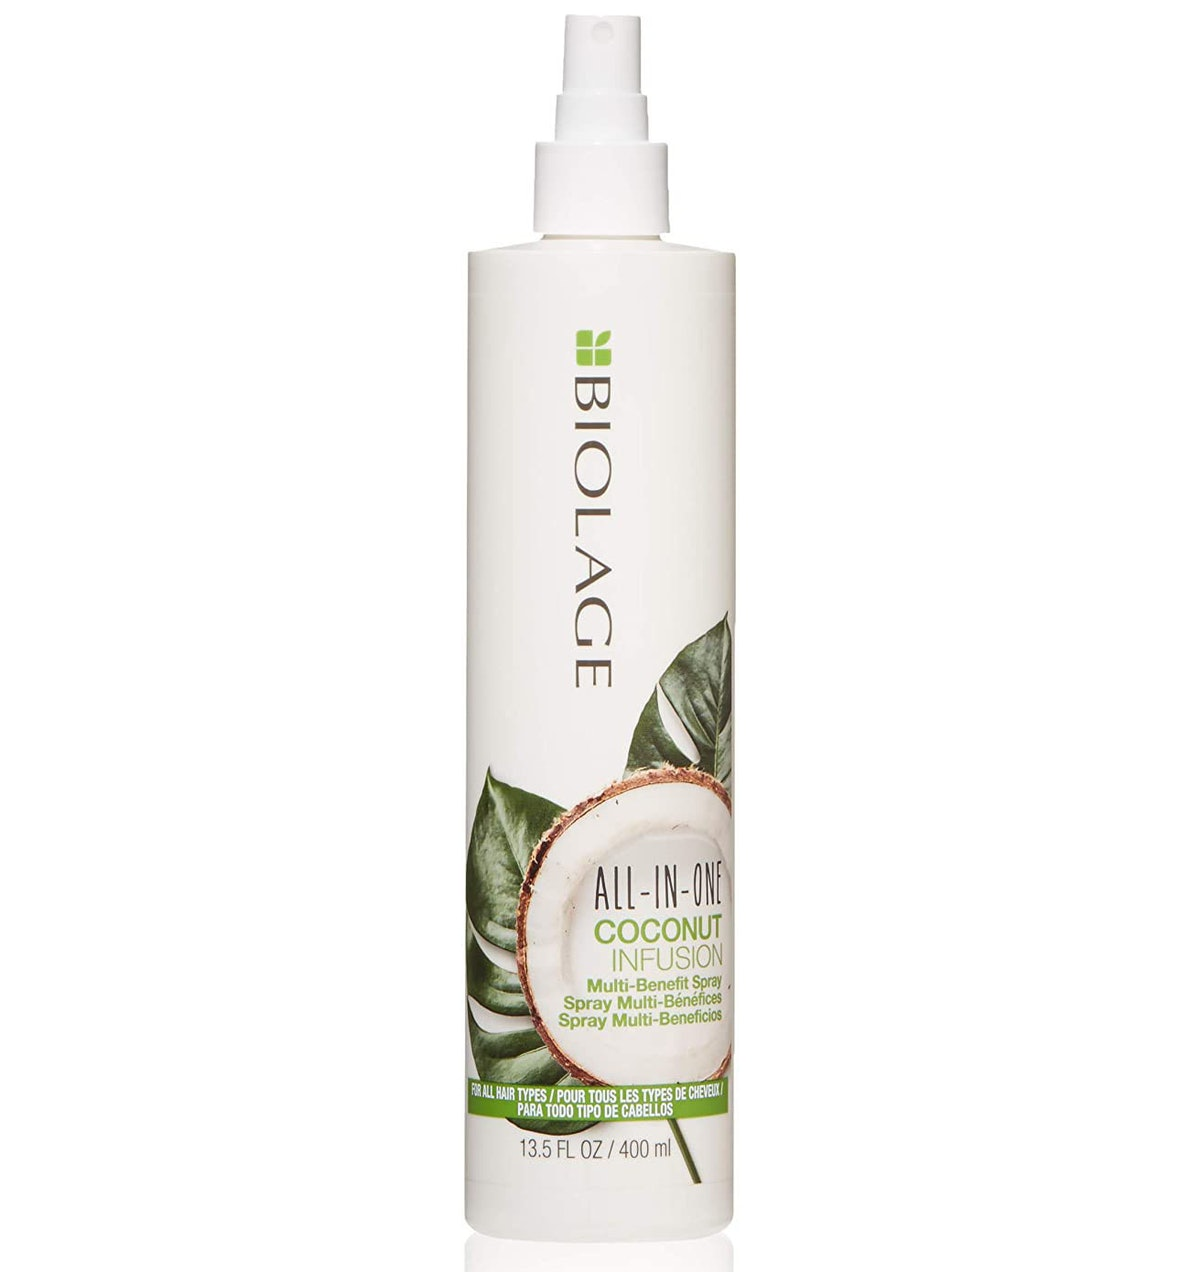 BIOLAGE All-In-One Coconut Infusion Multi-Benefit Treatment Spray